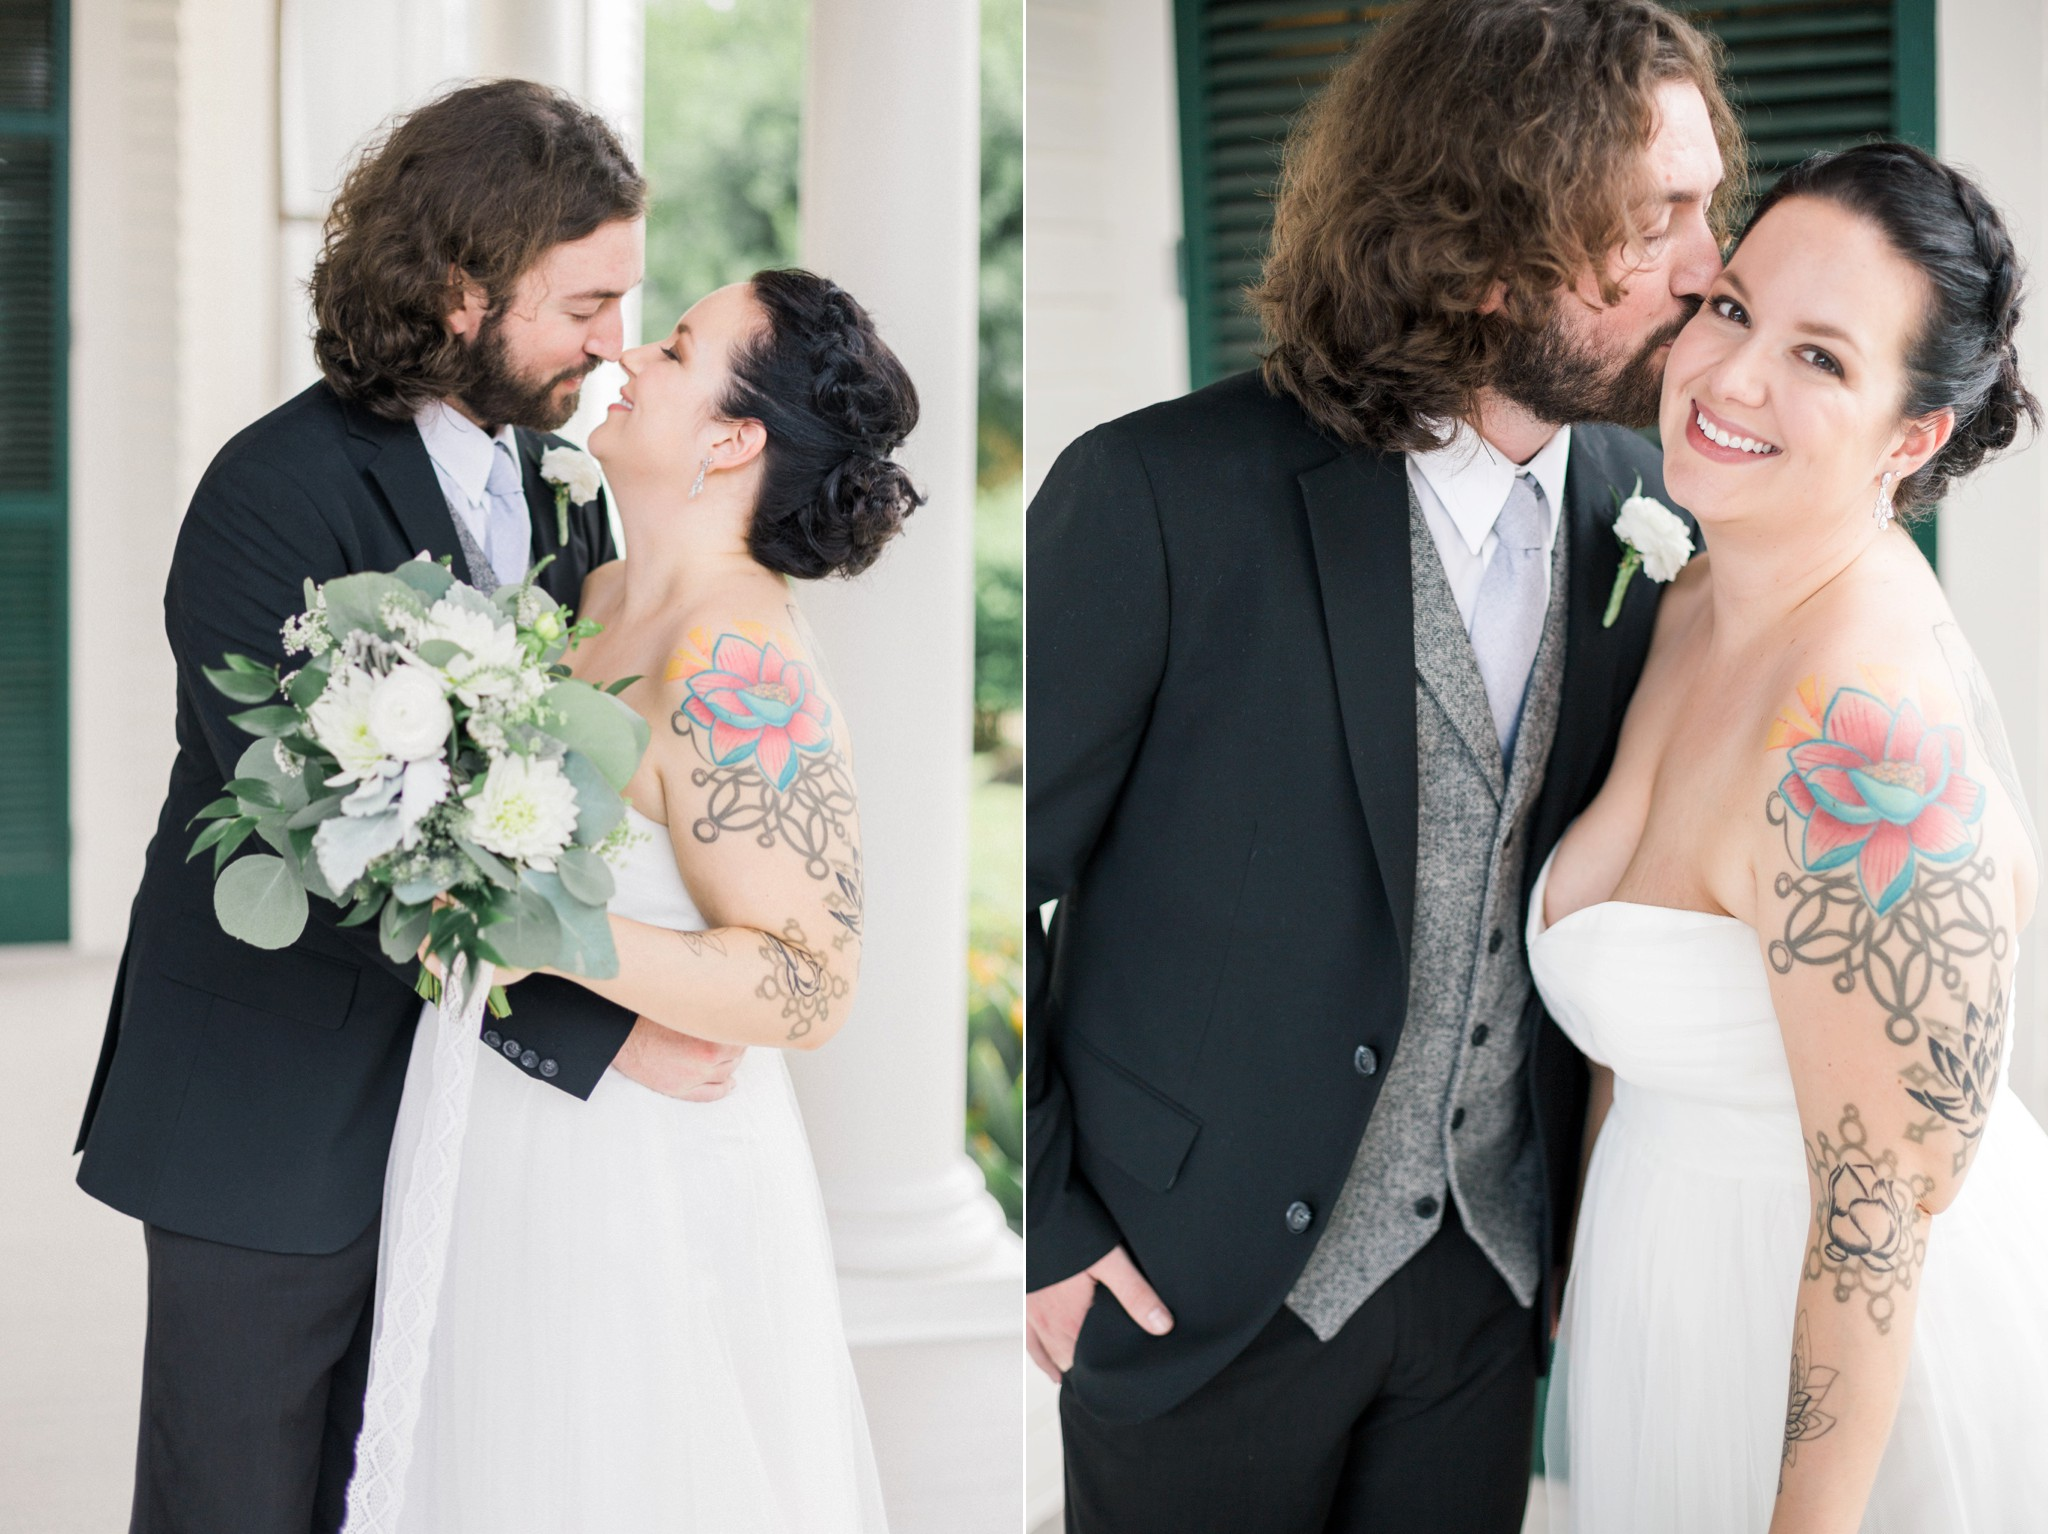 bride-and-groom-bhldn-jenny-yoo-bridal-gown-black-tux-gray-tie-wedding